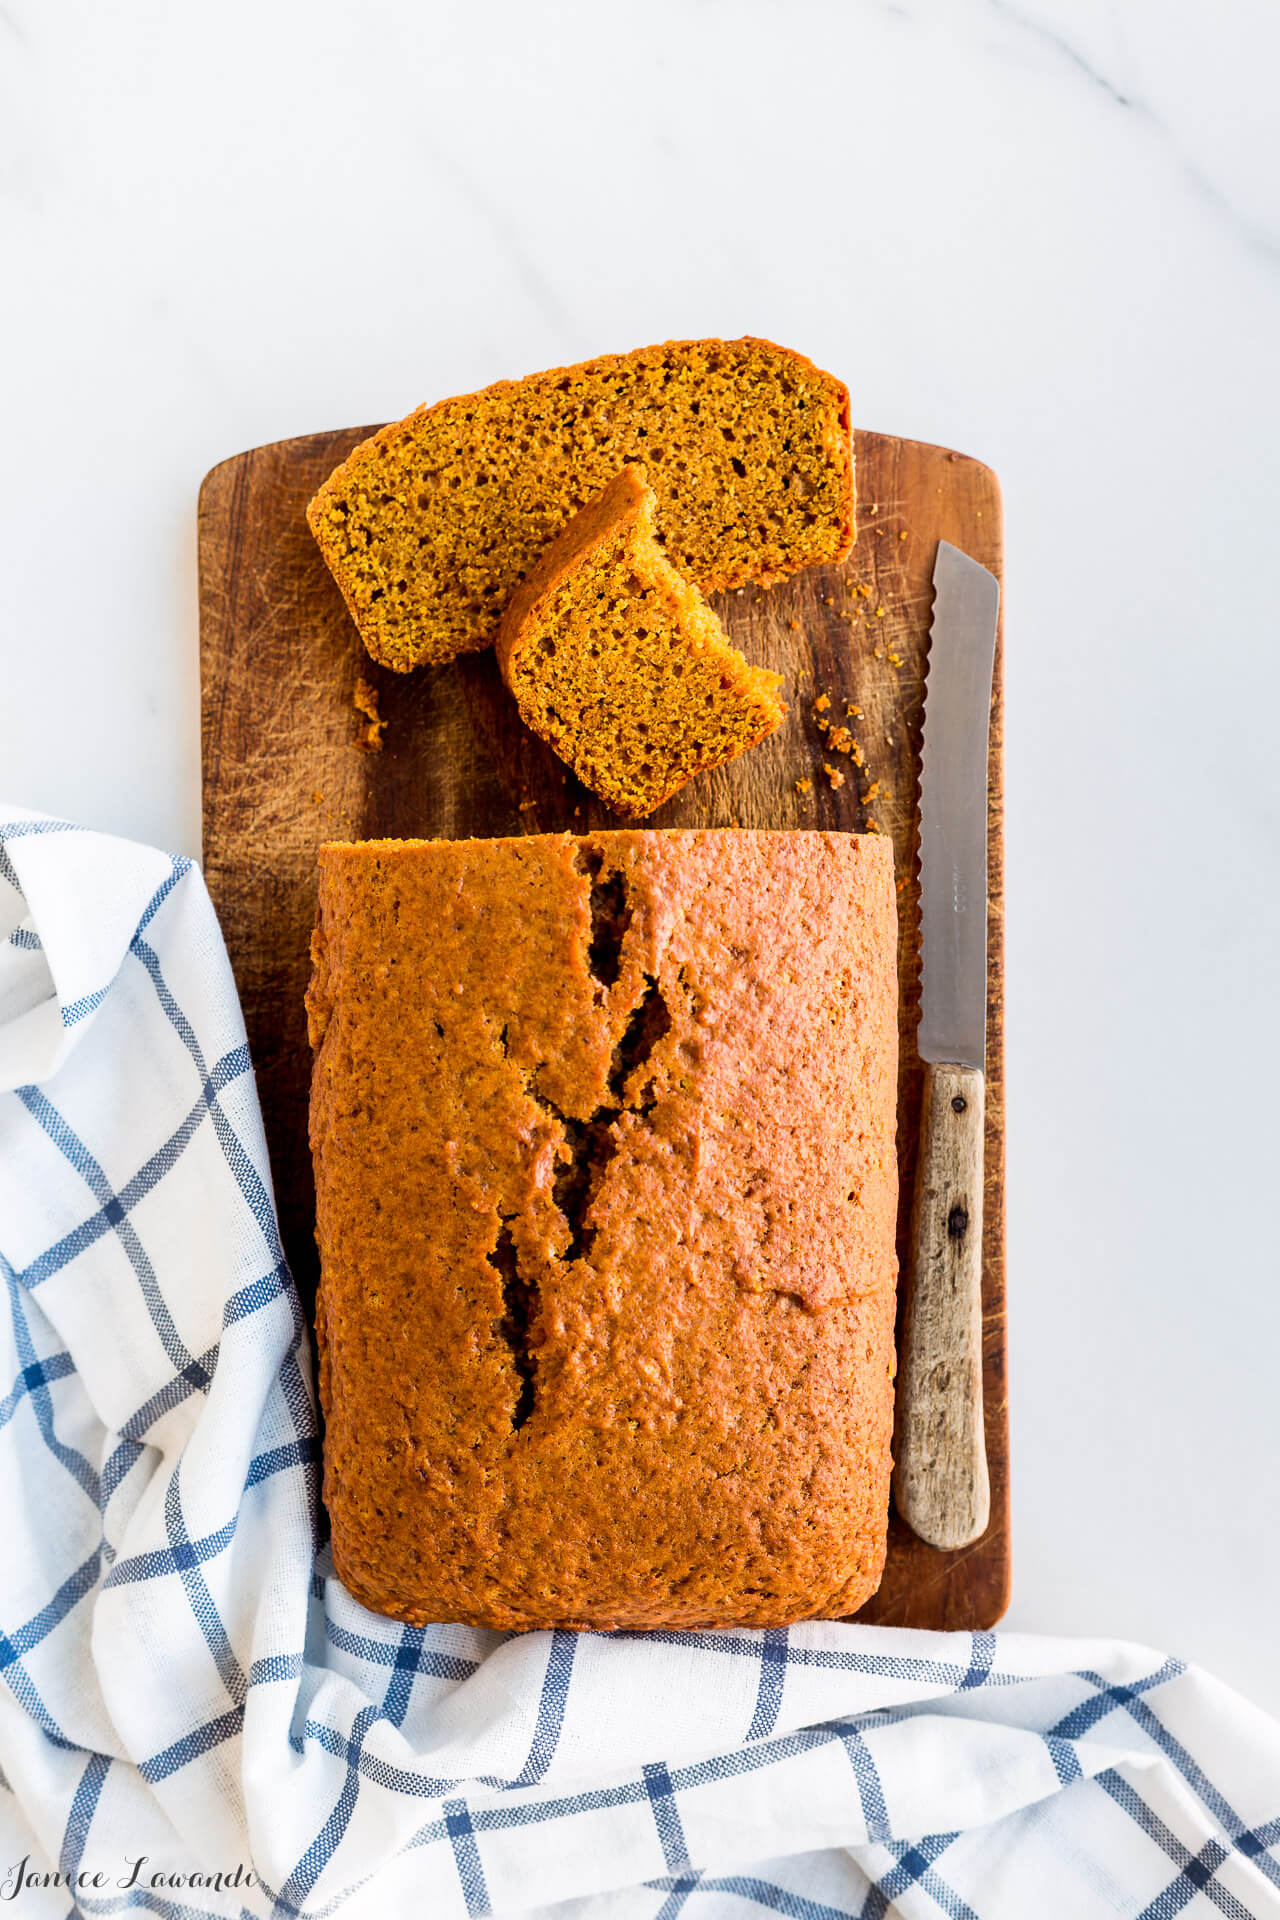 Slices of pumpkin loaf cake on a wooden cutting board with a serrated knife and a blue and white kitchen towel